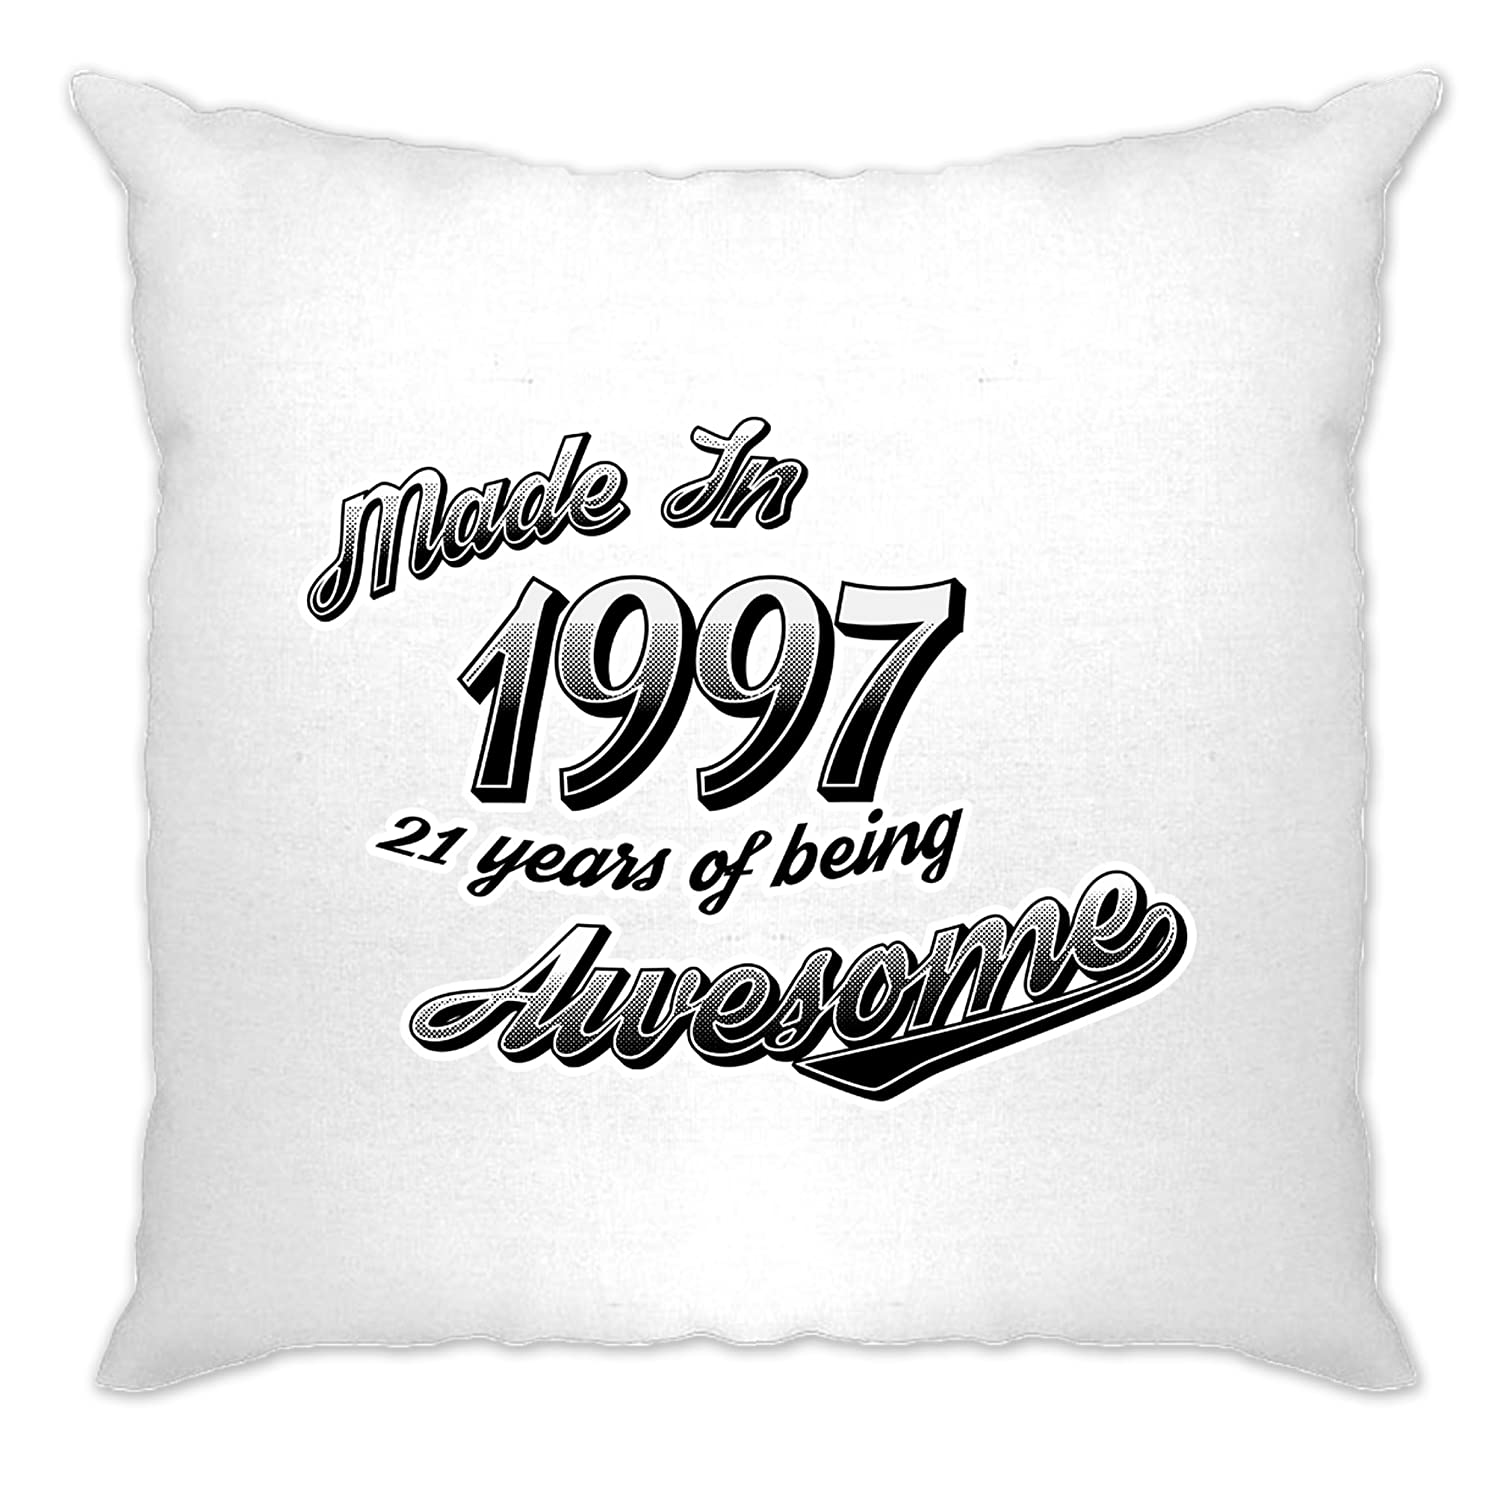 21st Birthday Cushion Cover Made 1997 21 Years Being Awesome A-CC-01535-NAT